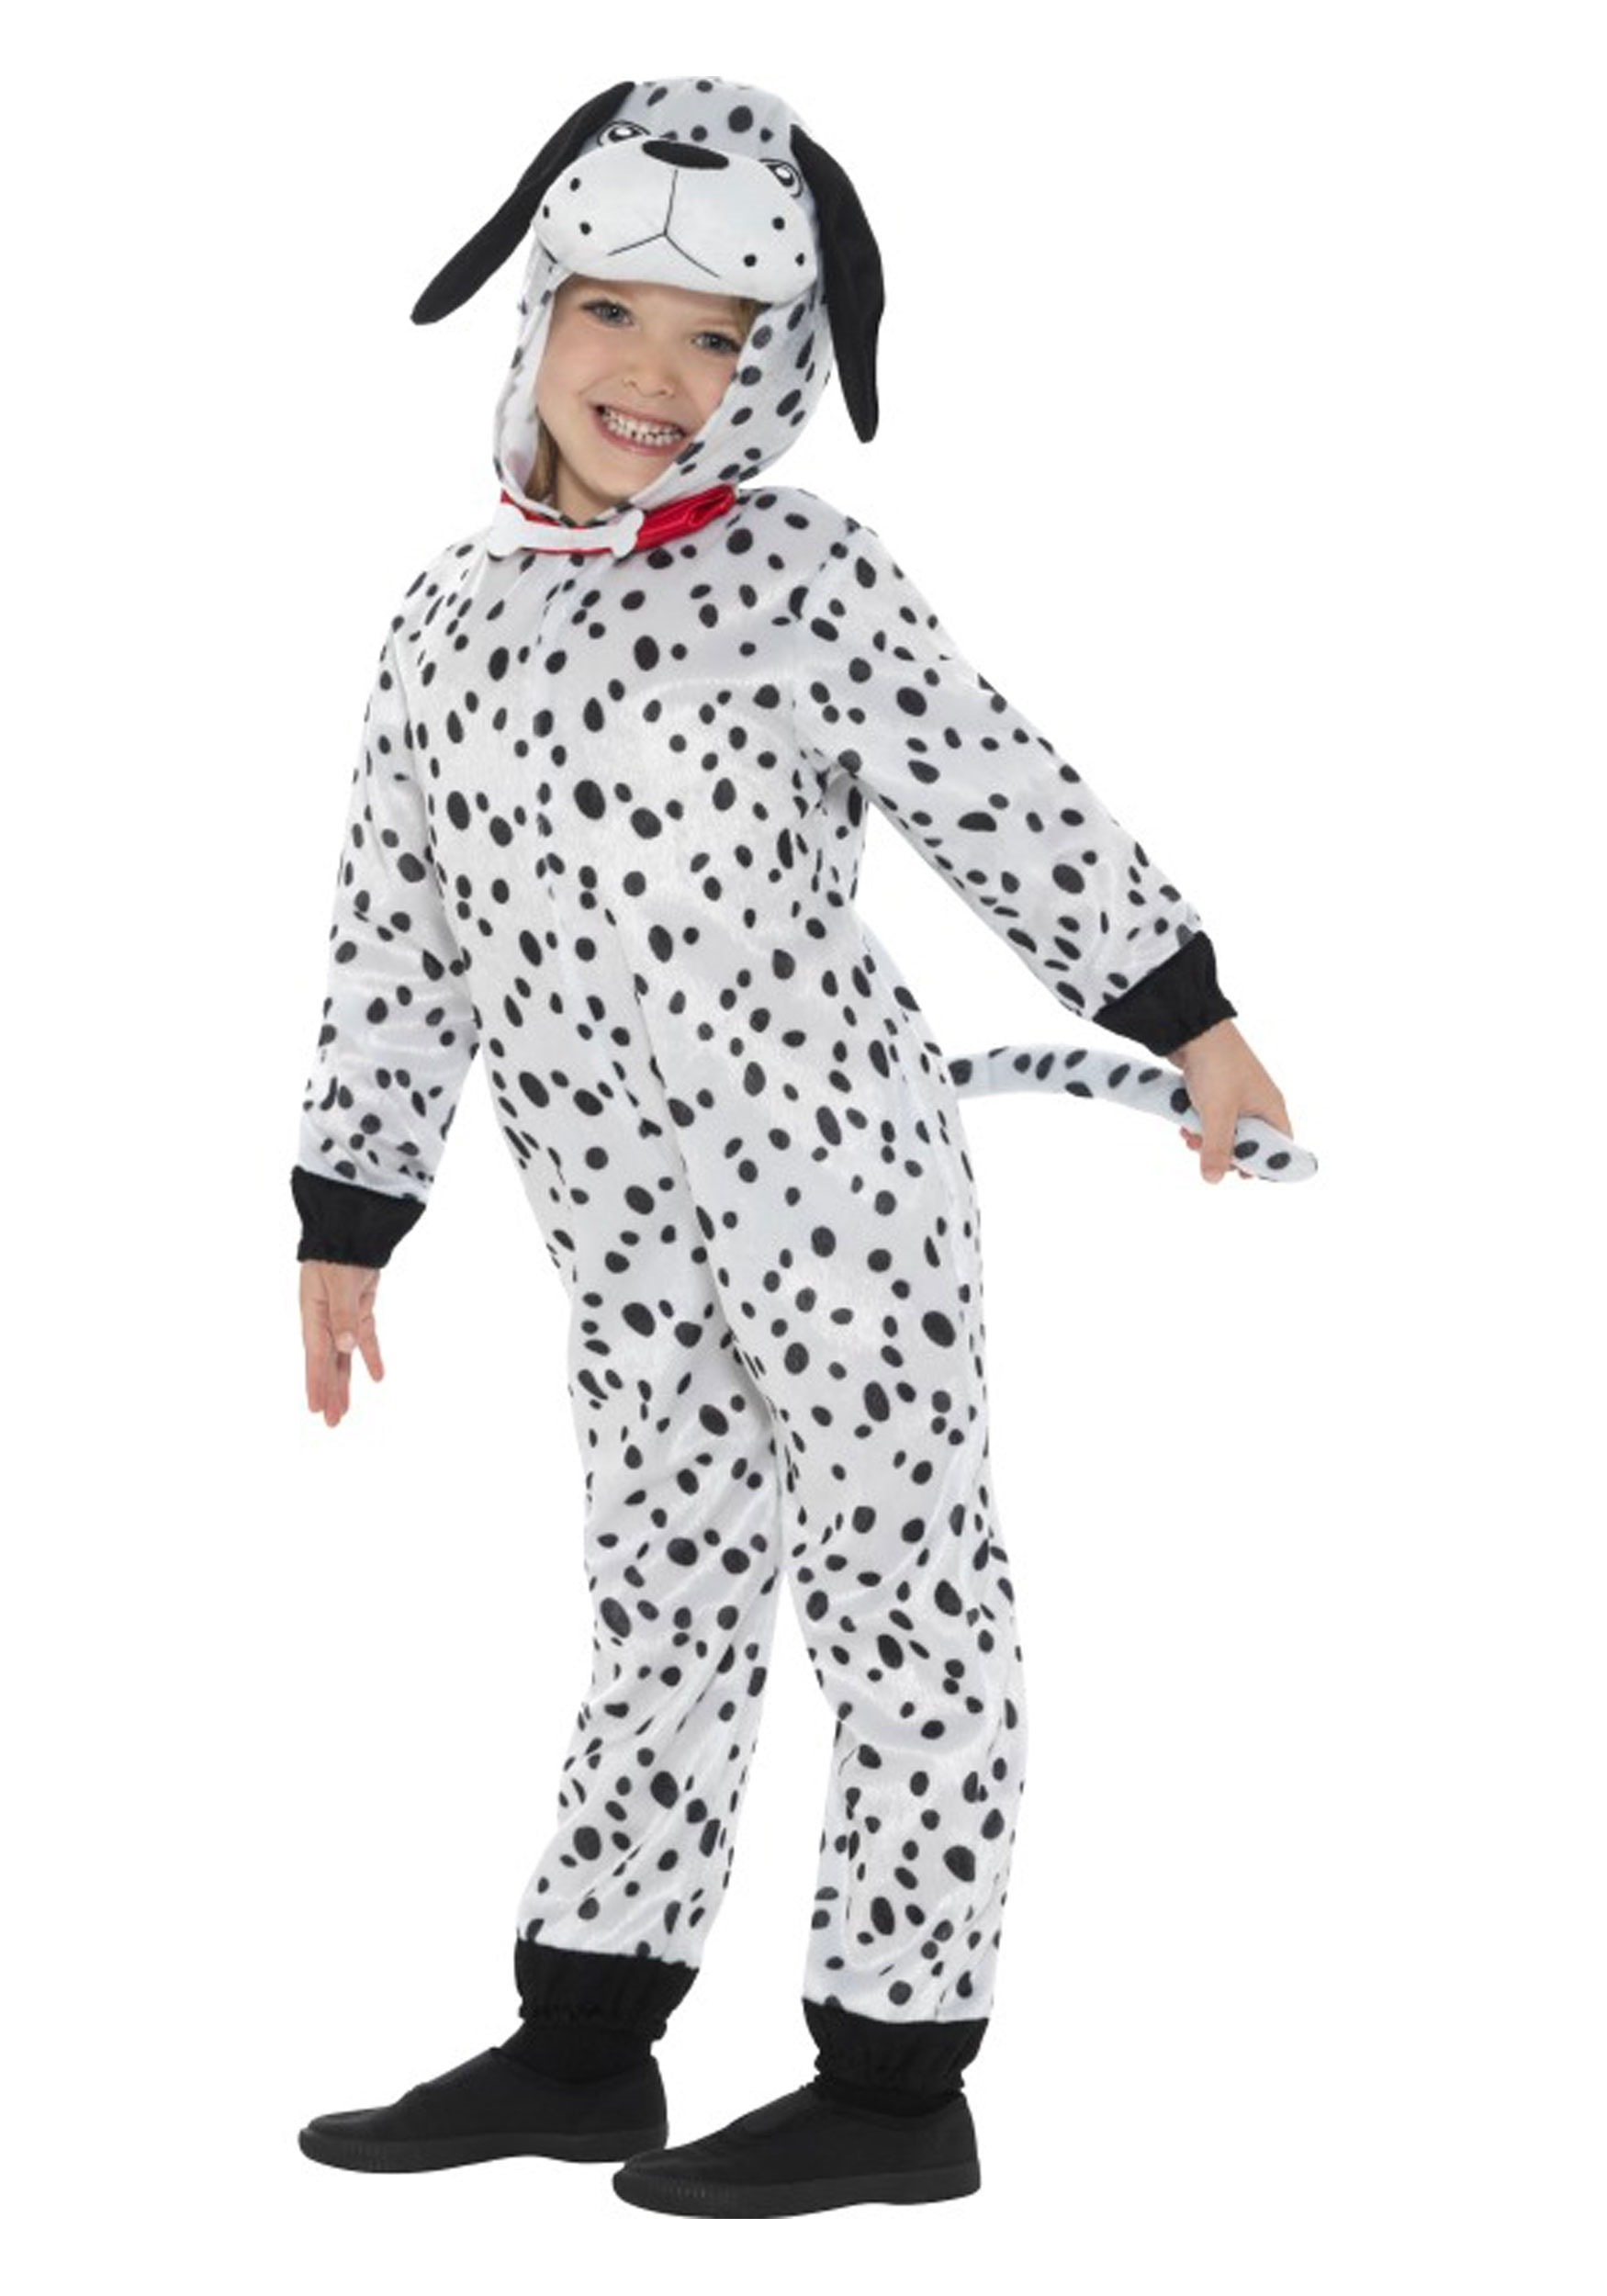 Kids Dalmation Costume  sc 1 st  Halloween Costumes & Dalmatian Kids Costume